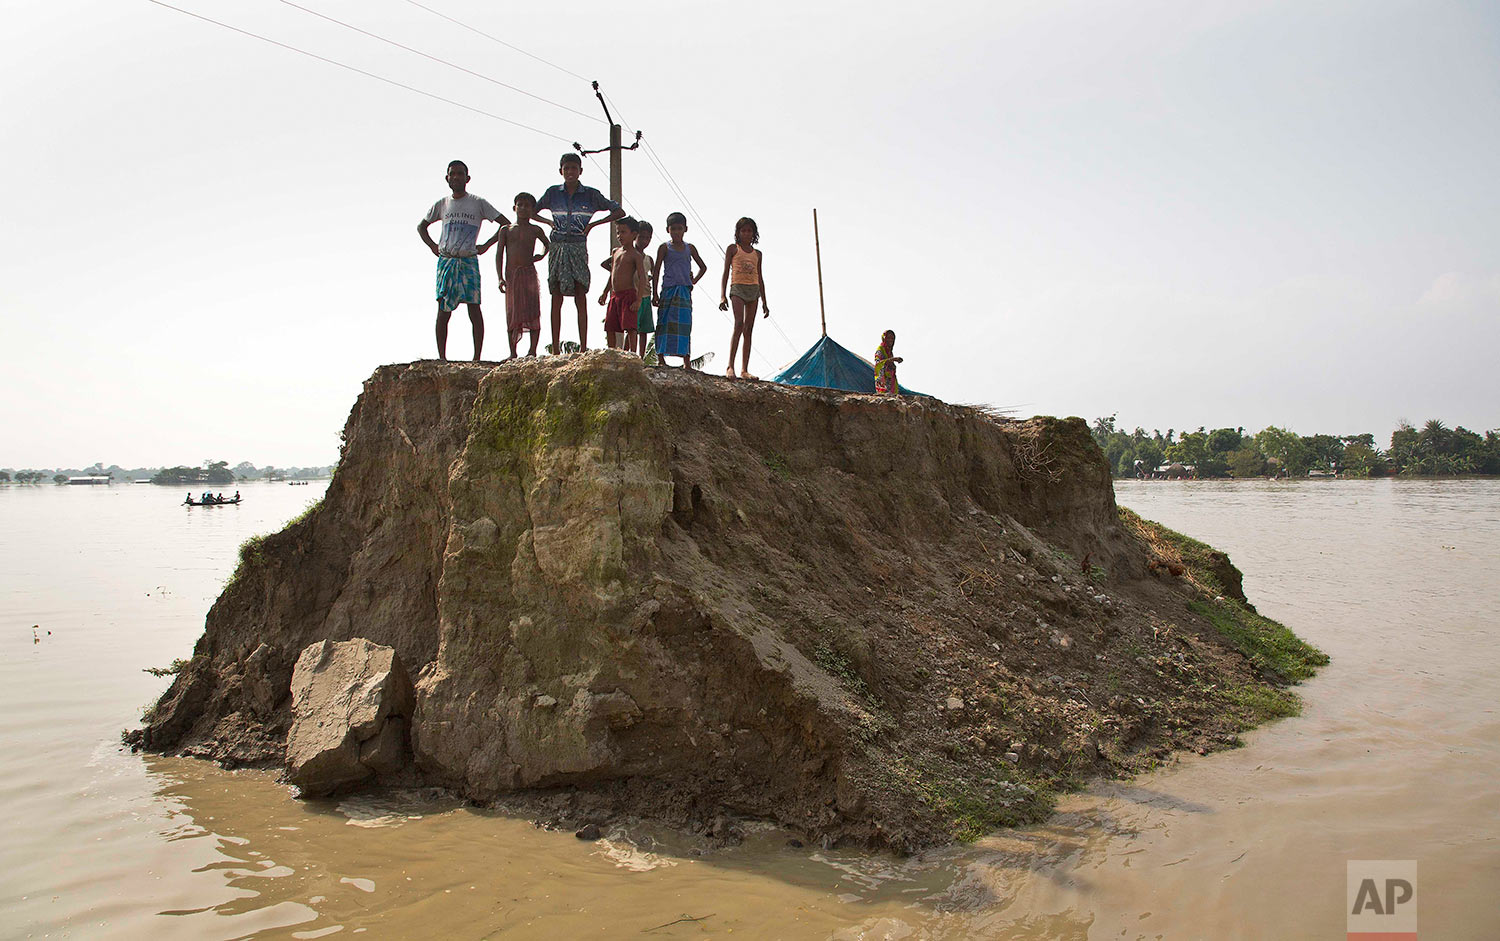 South Asia Floods